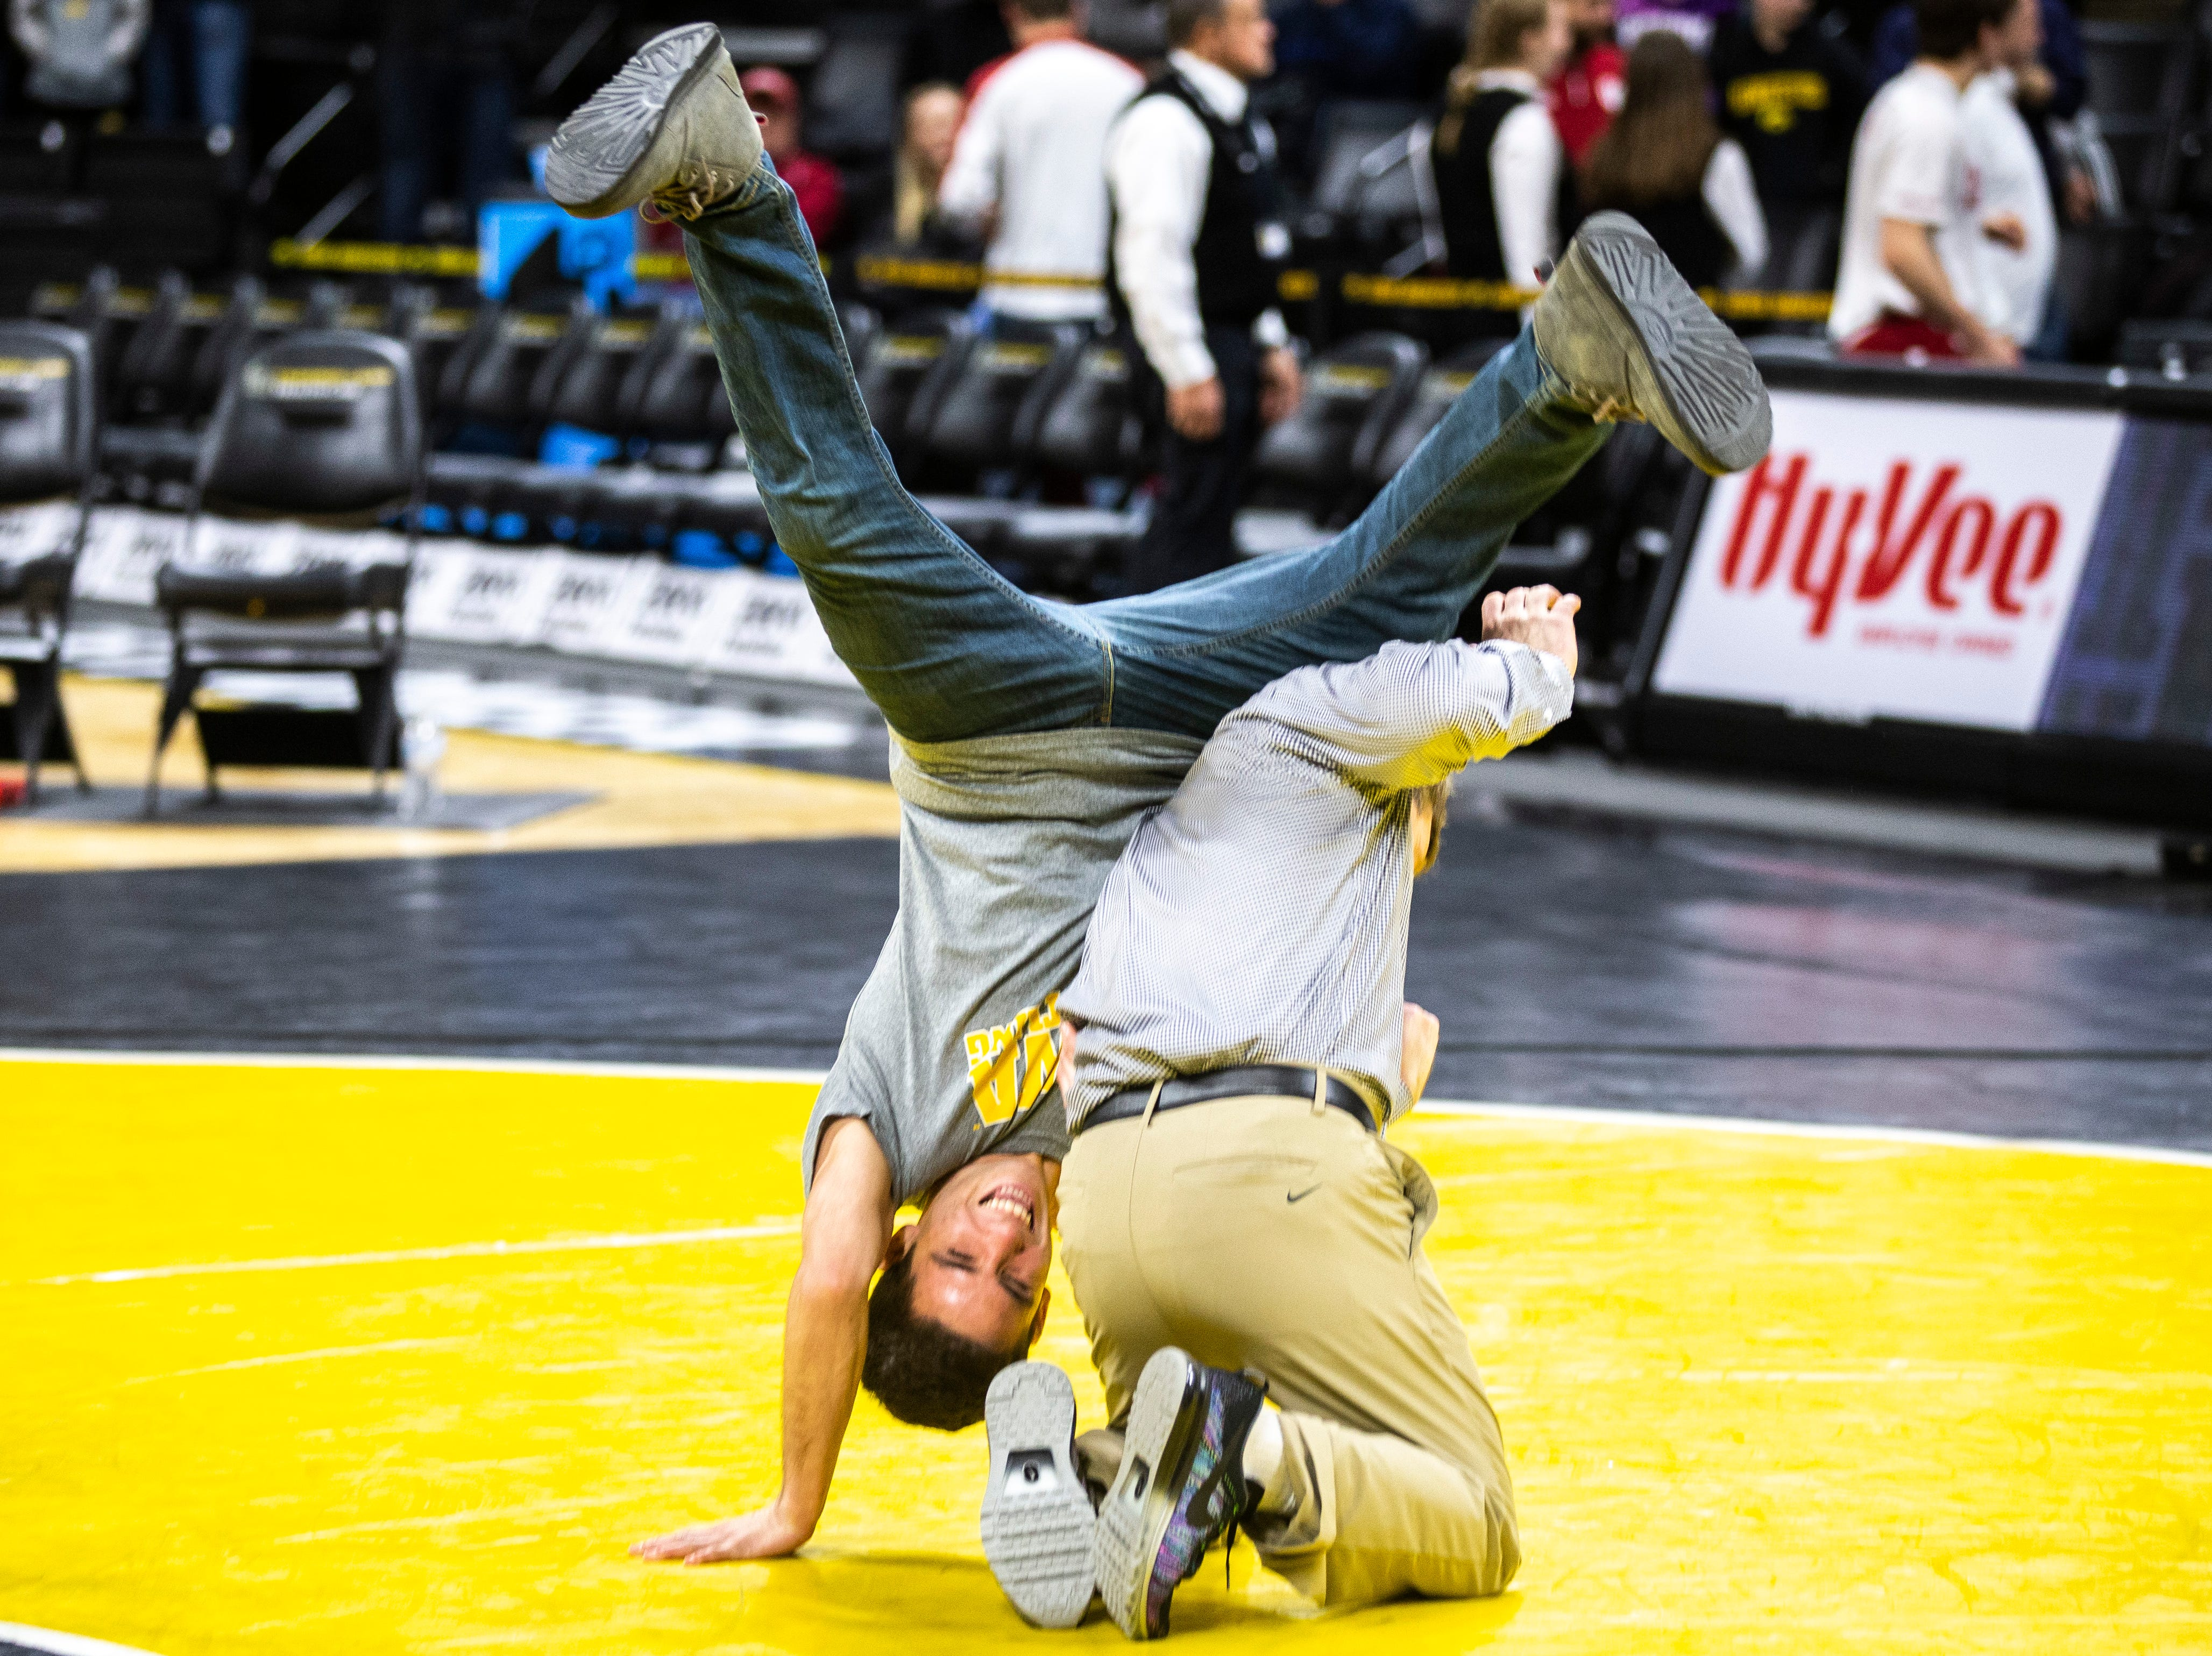 Iowa associate head coach Terry Brands gets a takedown on senior 125-pounder Perez Perez during a NCAA Big Ten Conference wrestling dual on Friday, Feb. 15, 2019 at Carver-Hawkeye Arena in Iowa City, Iowa.